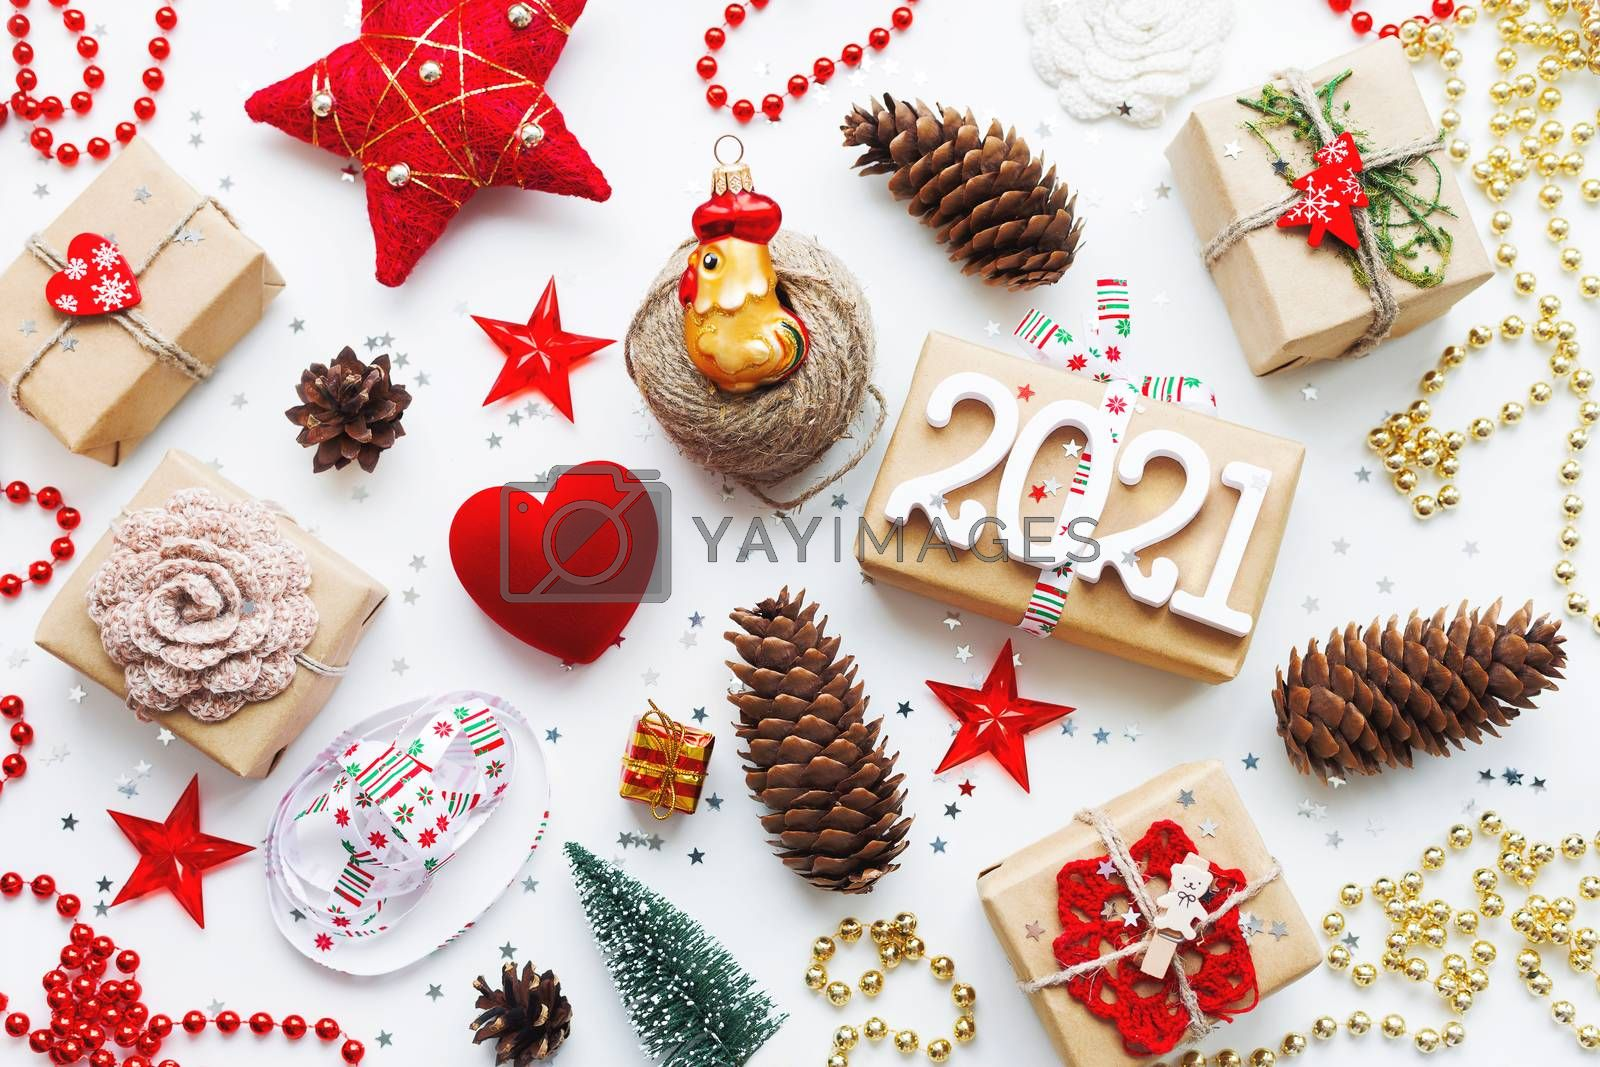 Christmas presents with decorations. New Year 2021 gifts in craf by aksenovko